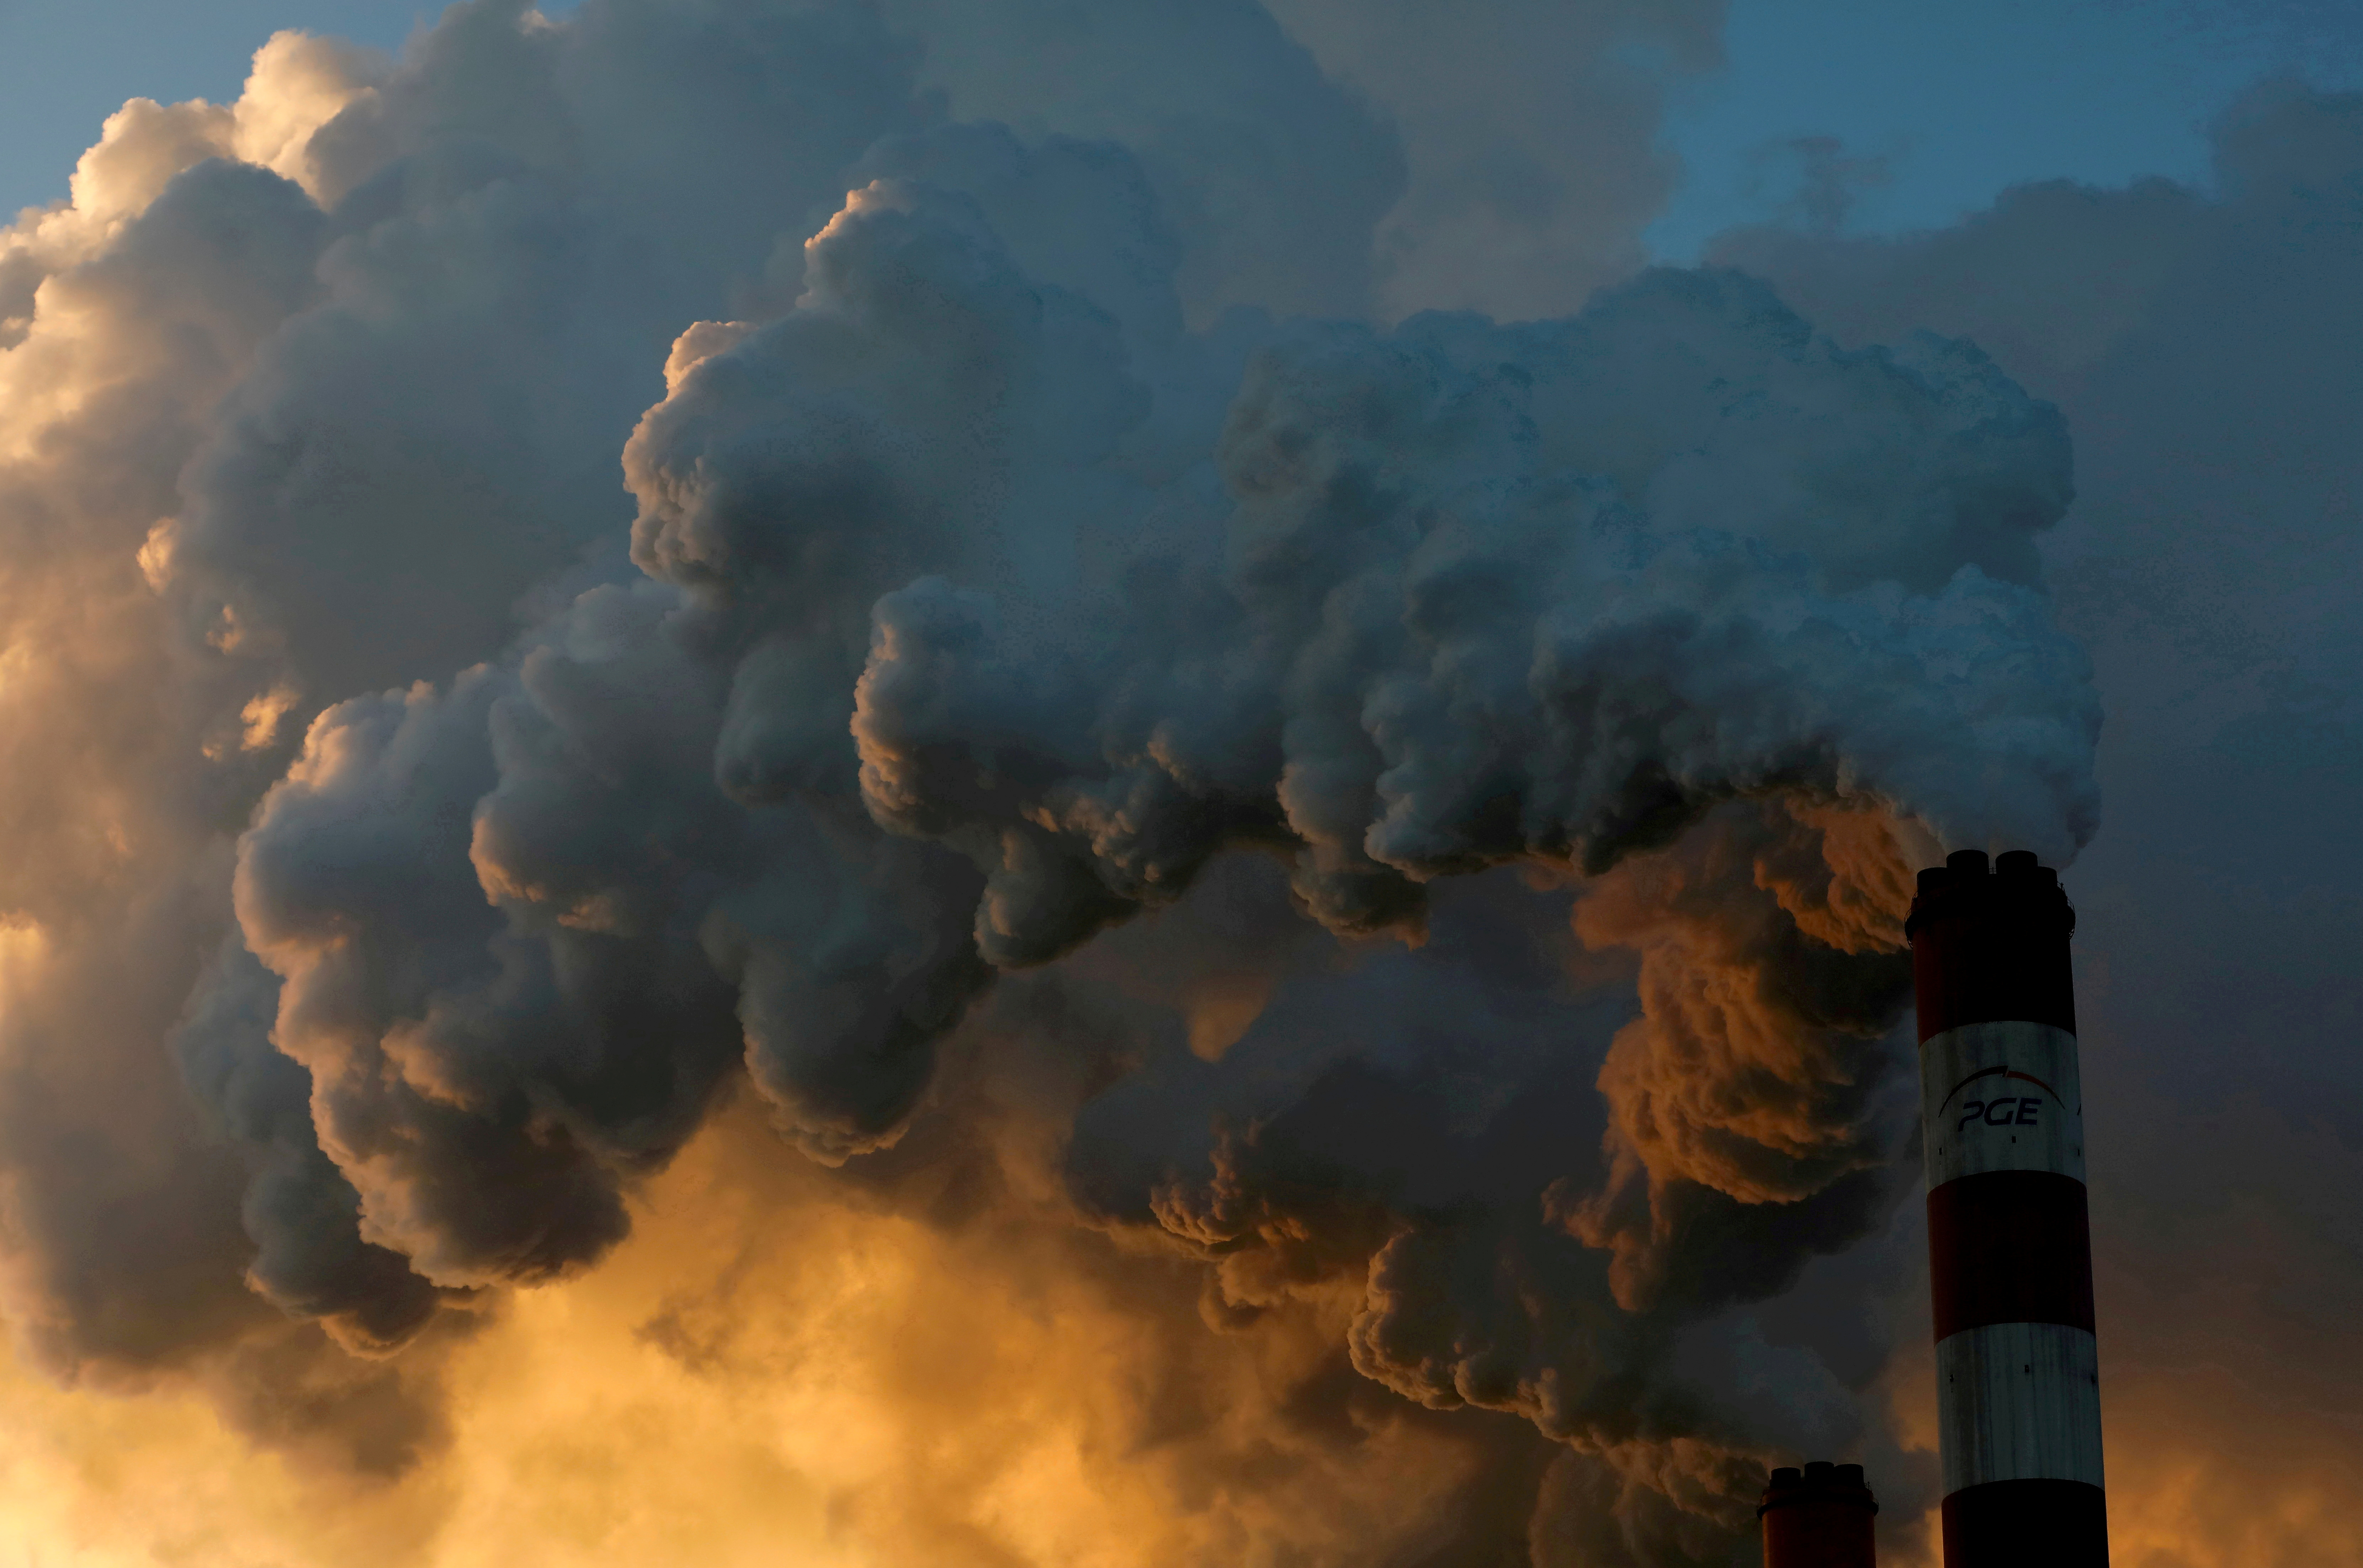 Smoke and steam billow from Belchatow Power Station, Europe's largest coal-fired power plant, near Belchatow, Poland. Picture taken November 28, 2018. REUTERS/Kacper Pempel